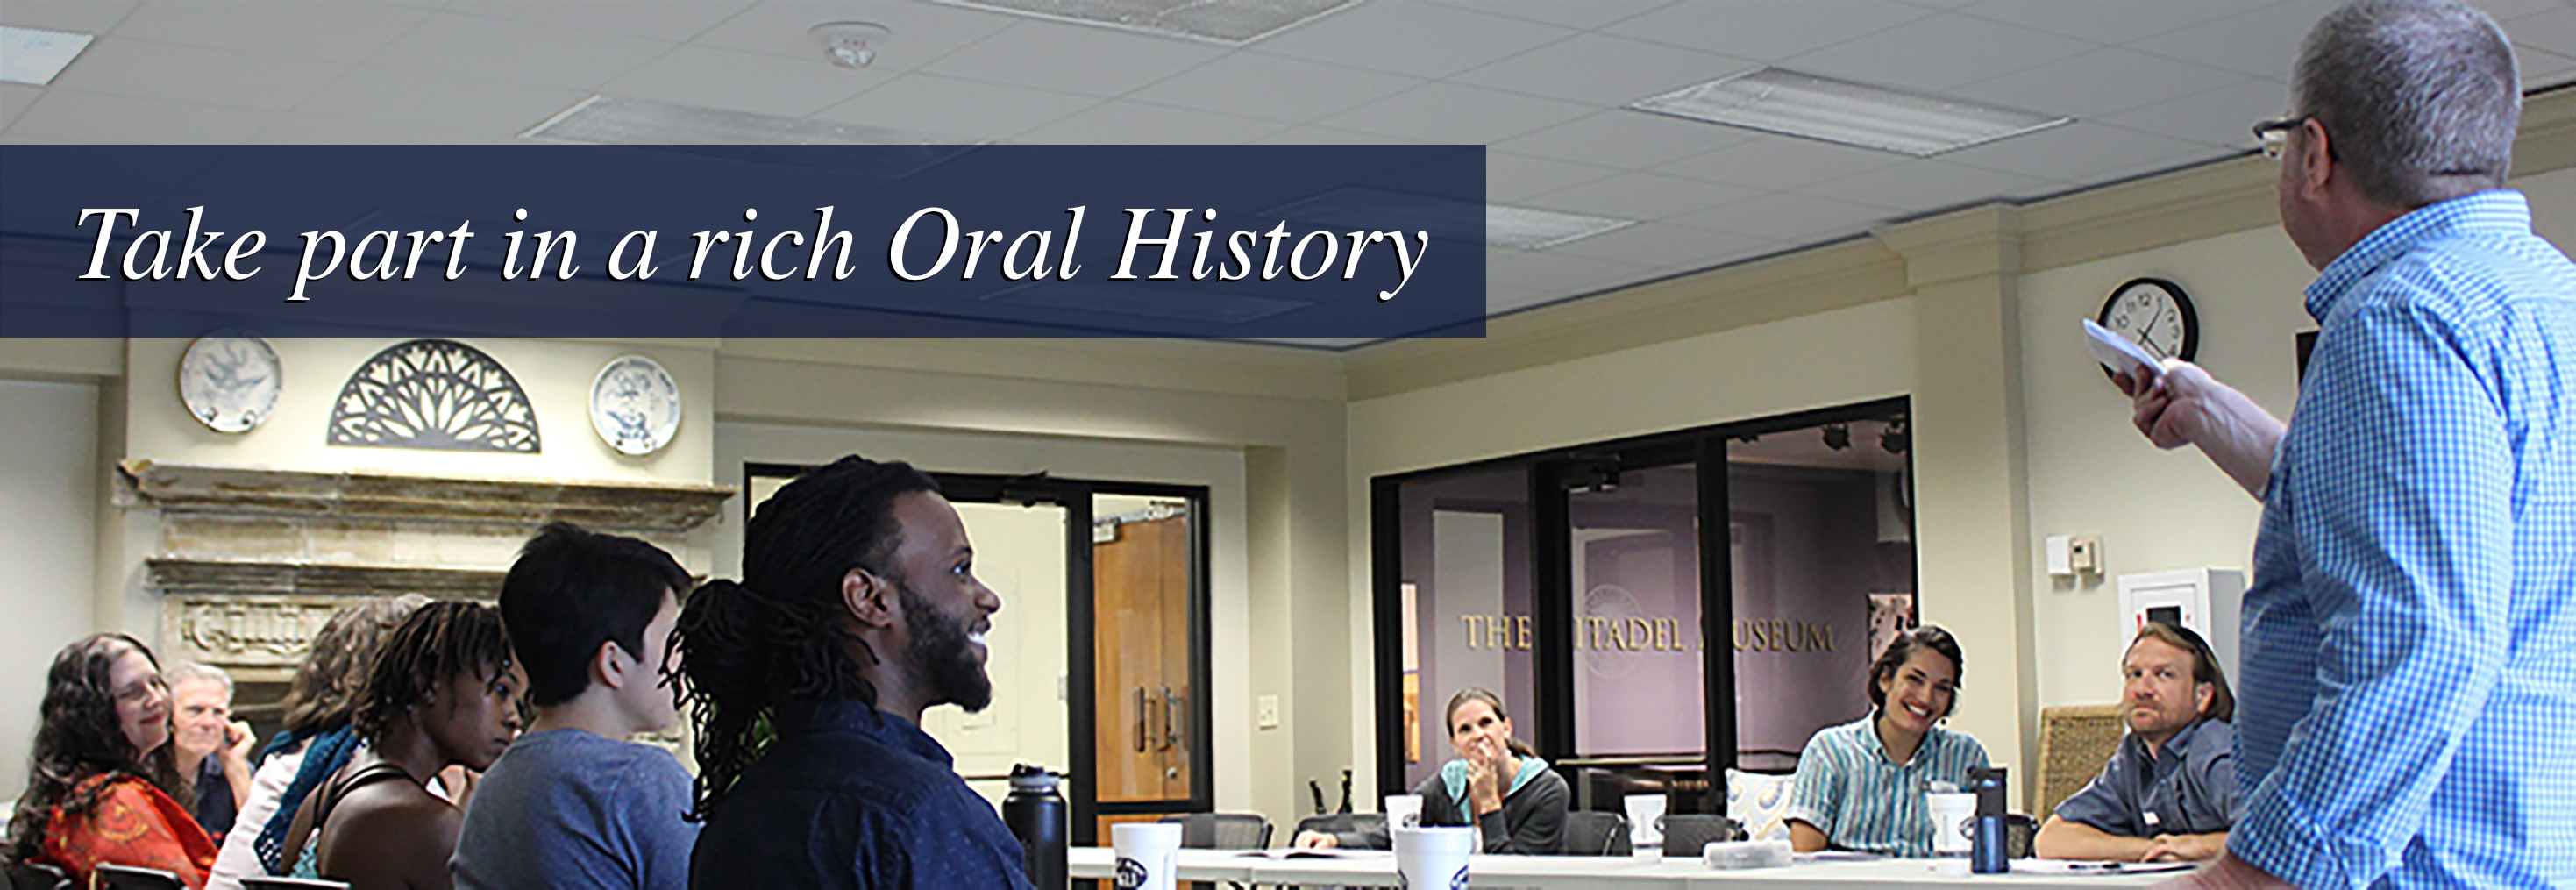 The Citadel Oral History Program